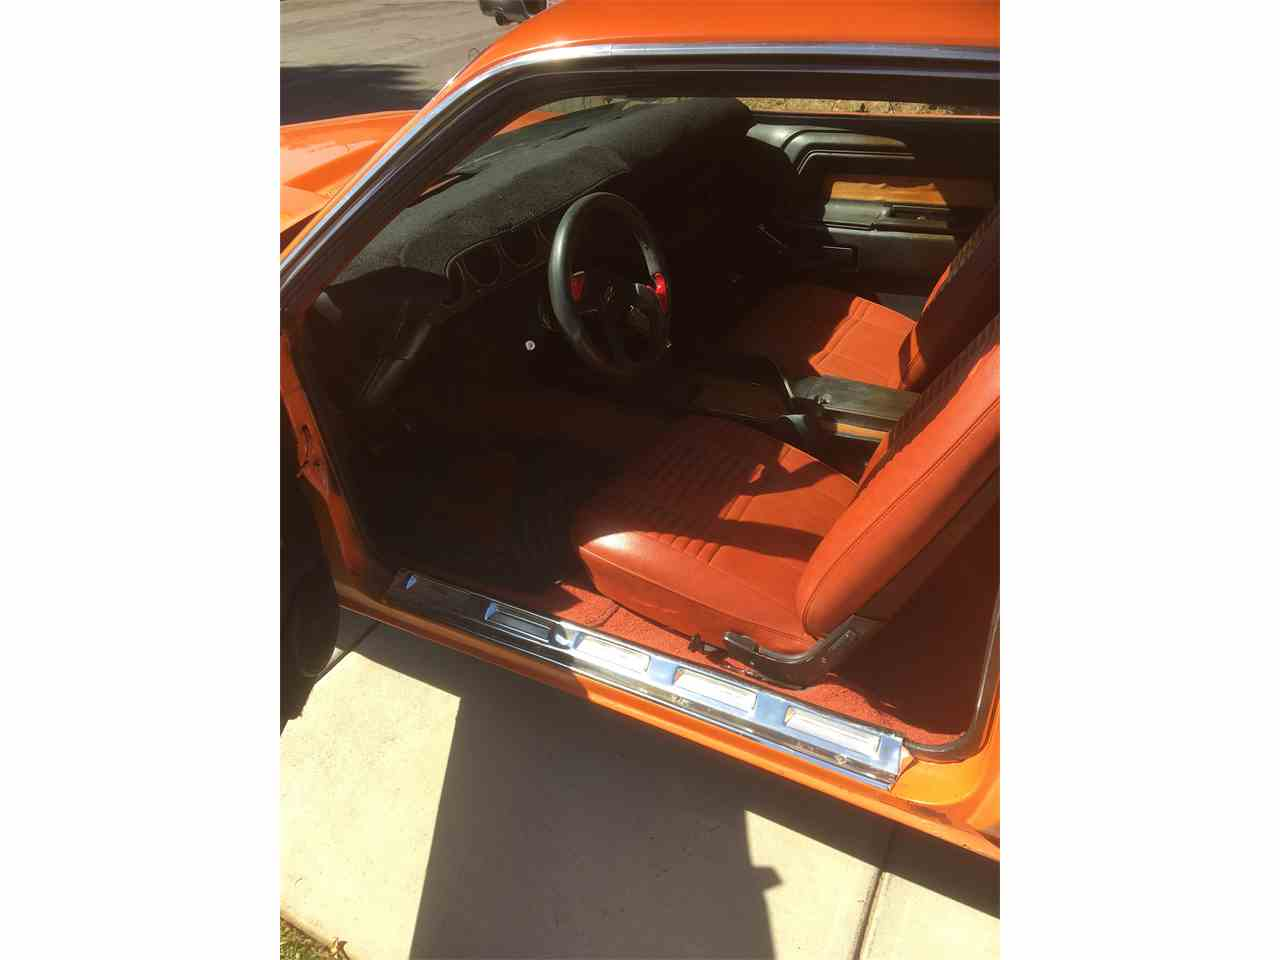 Large Picture of 1970 Dodge Challenger R/T located in Altadena  California - $50,000.00 - M814